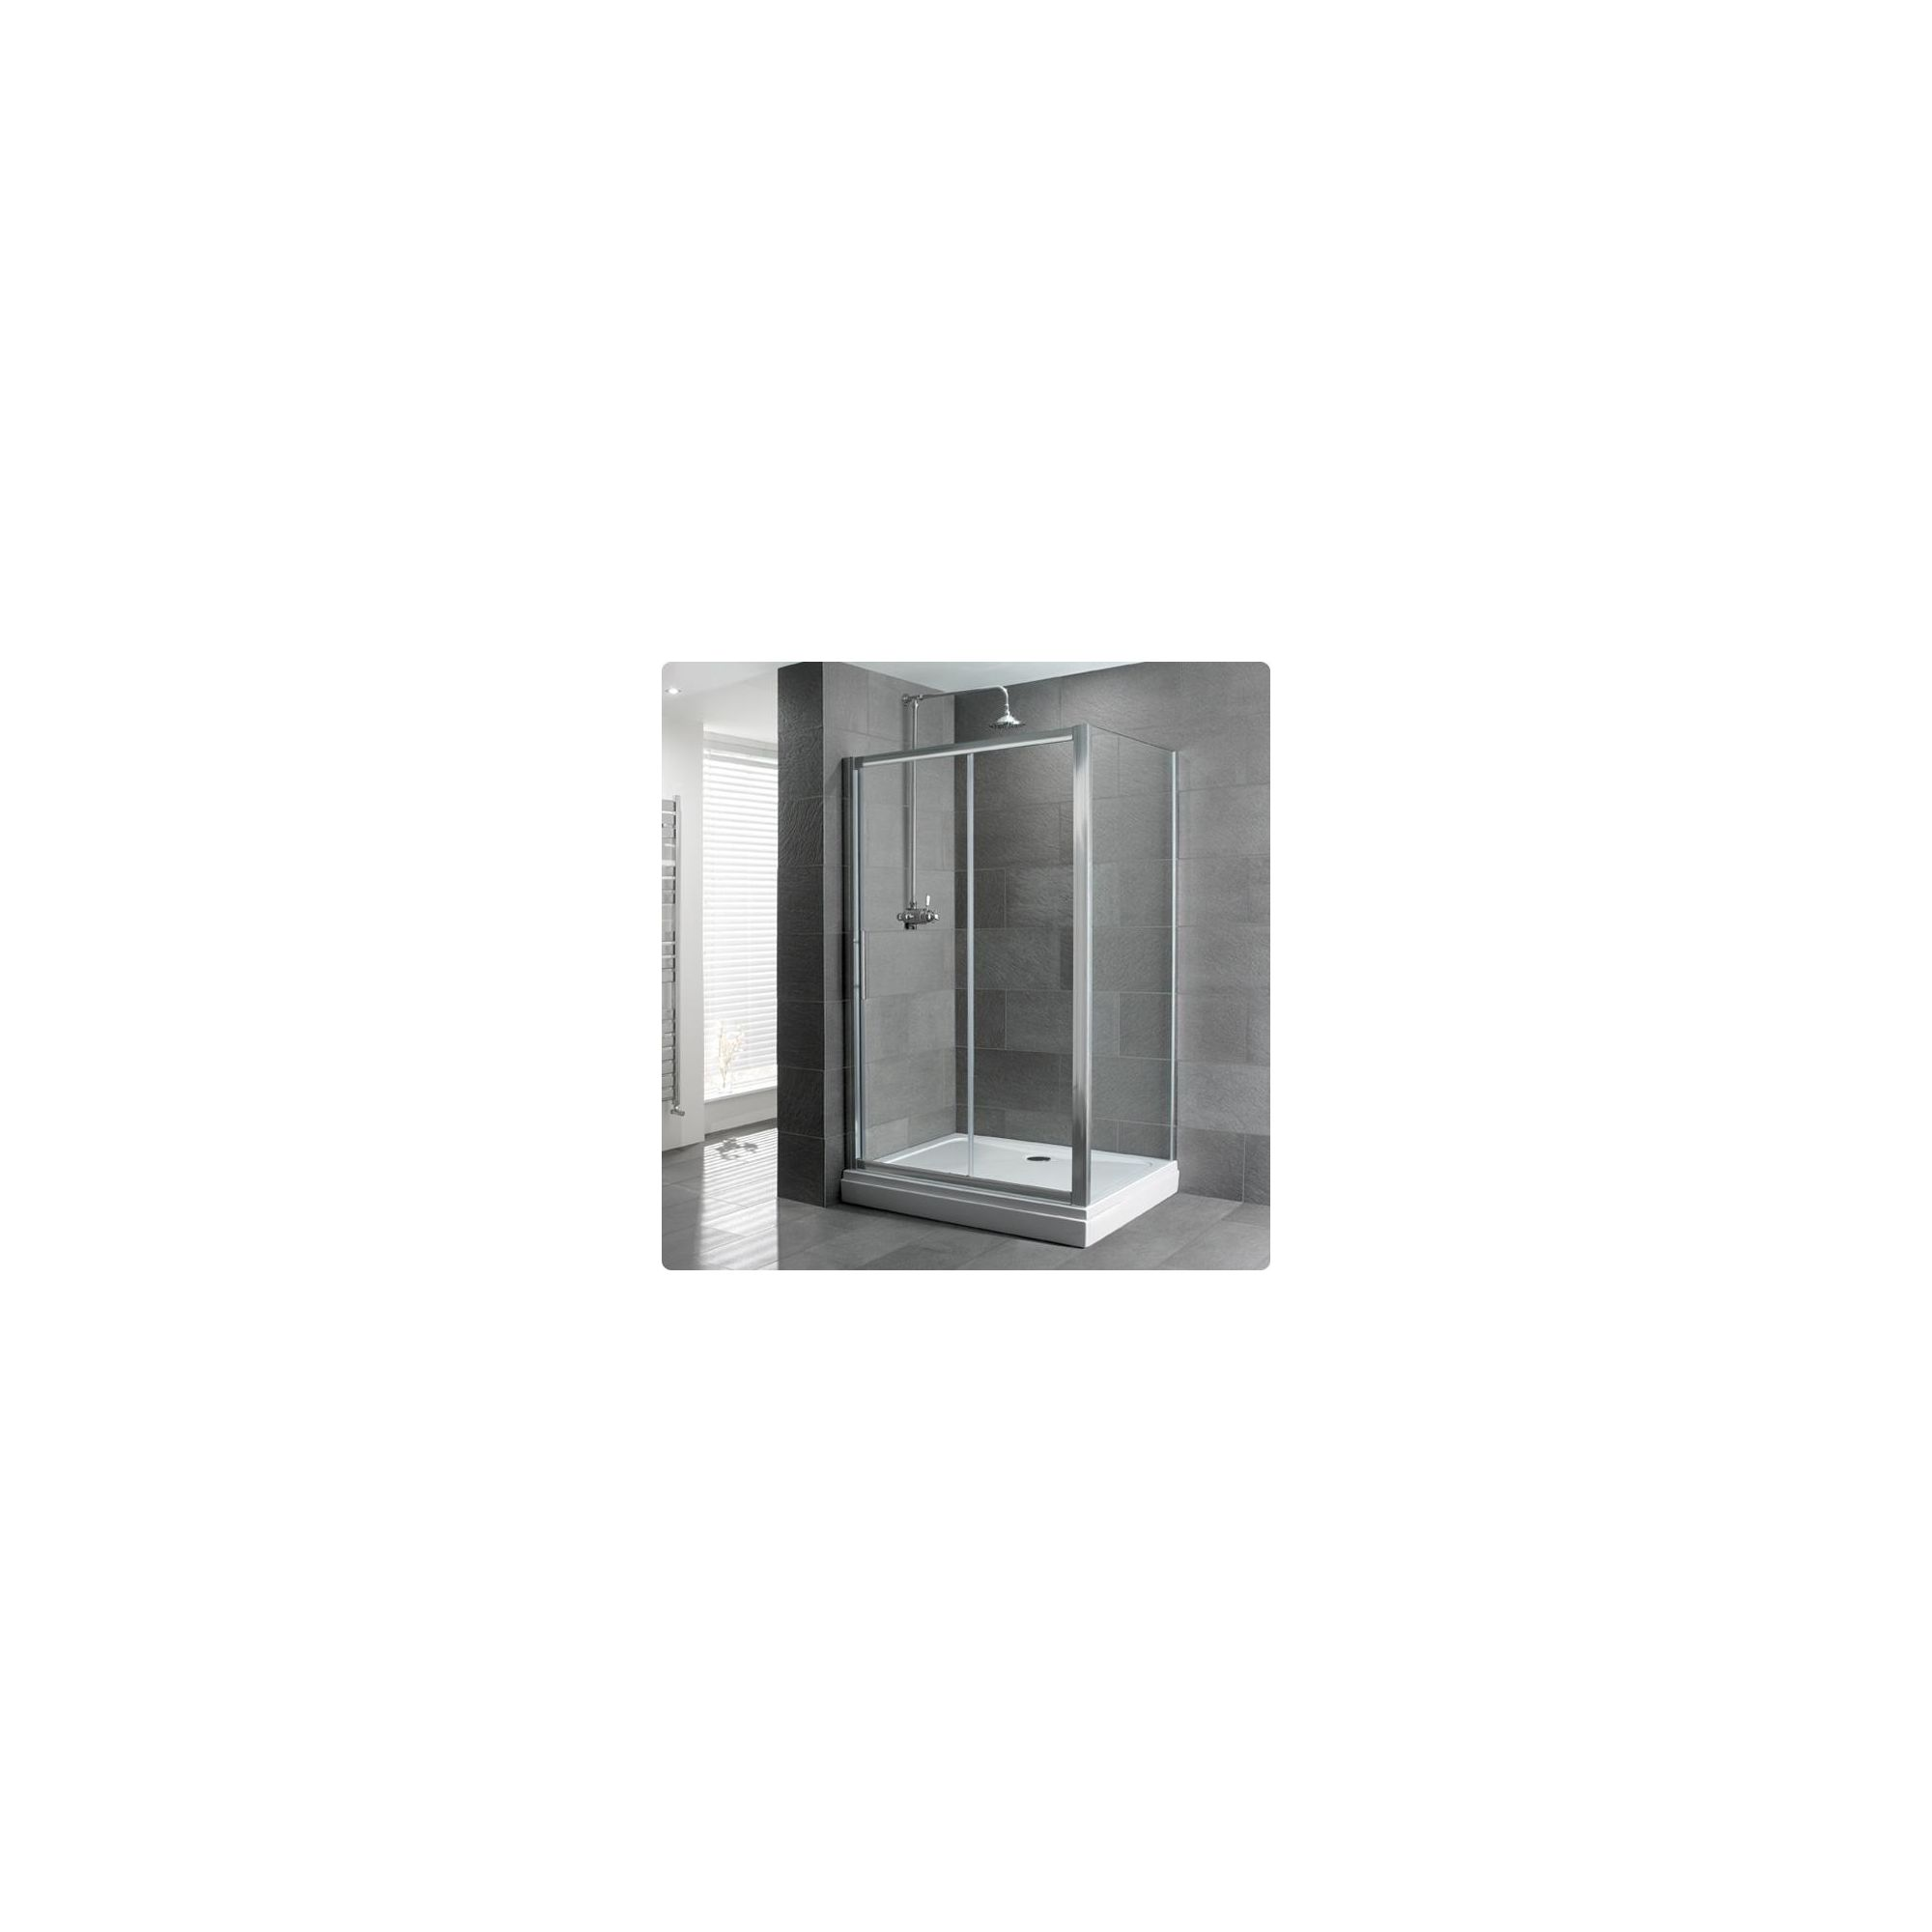 Duchy Select Silver Single Sliding Door Shower Enclosure, 1400mm x 700mm, Standard Tray, 6mm Glass at Tesco Direct